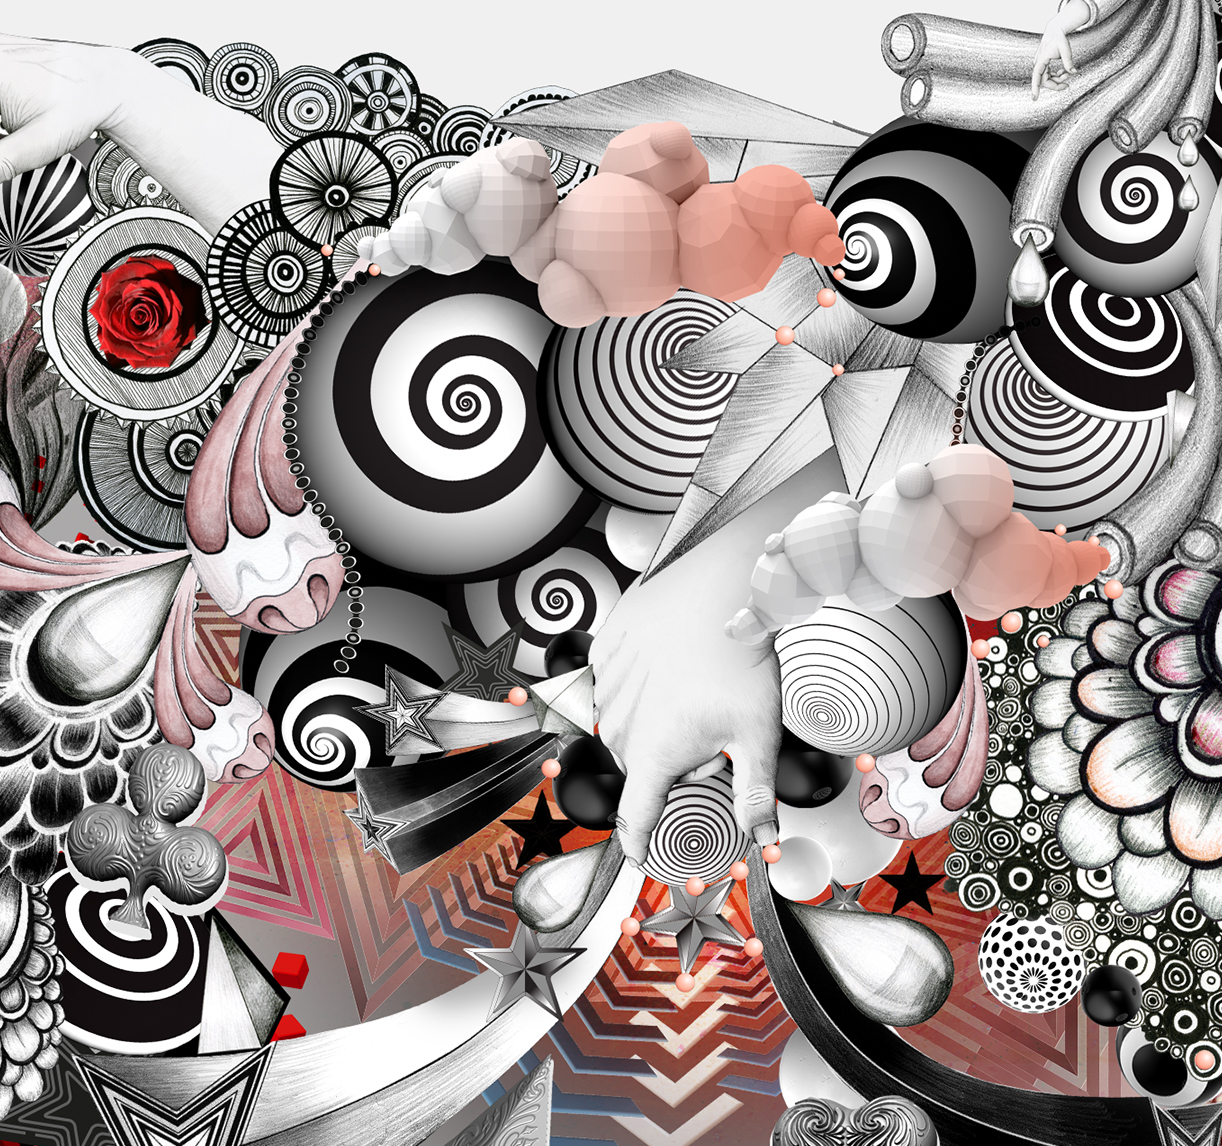 Created using: Photograhy // Pen & Ink // Pencil //3D modles // Vector drawings